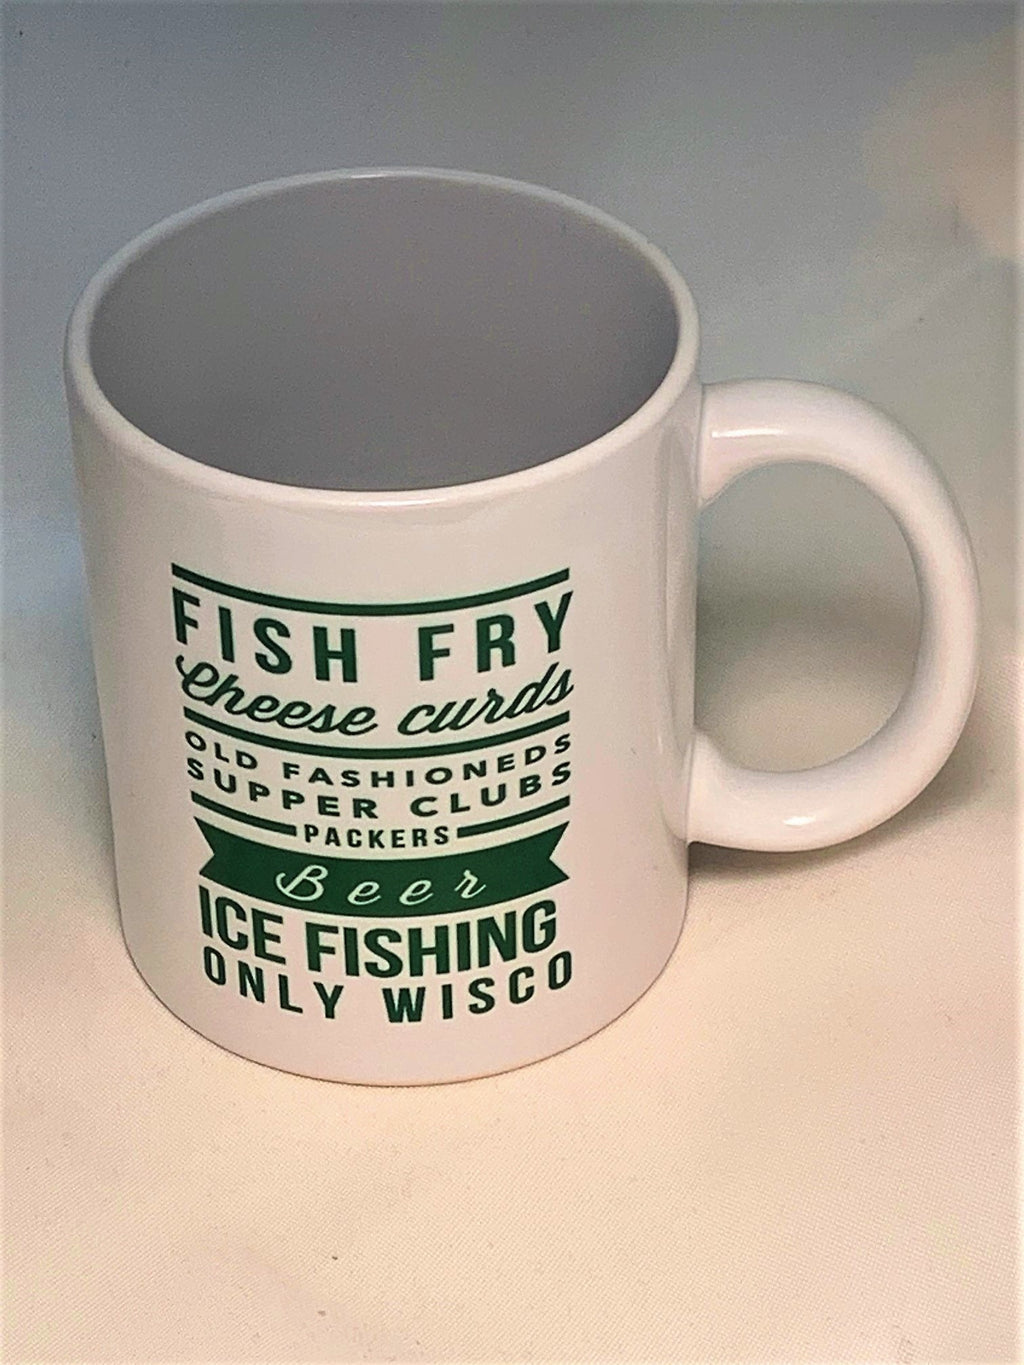 Fish Fry Cheese Curds Mug